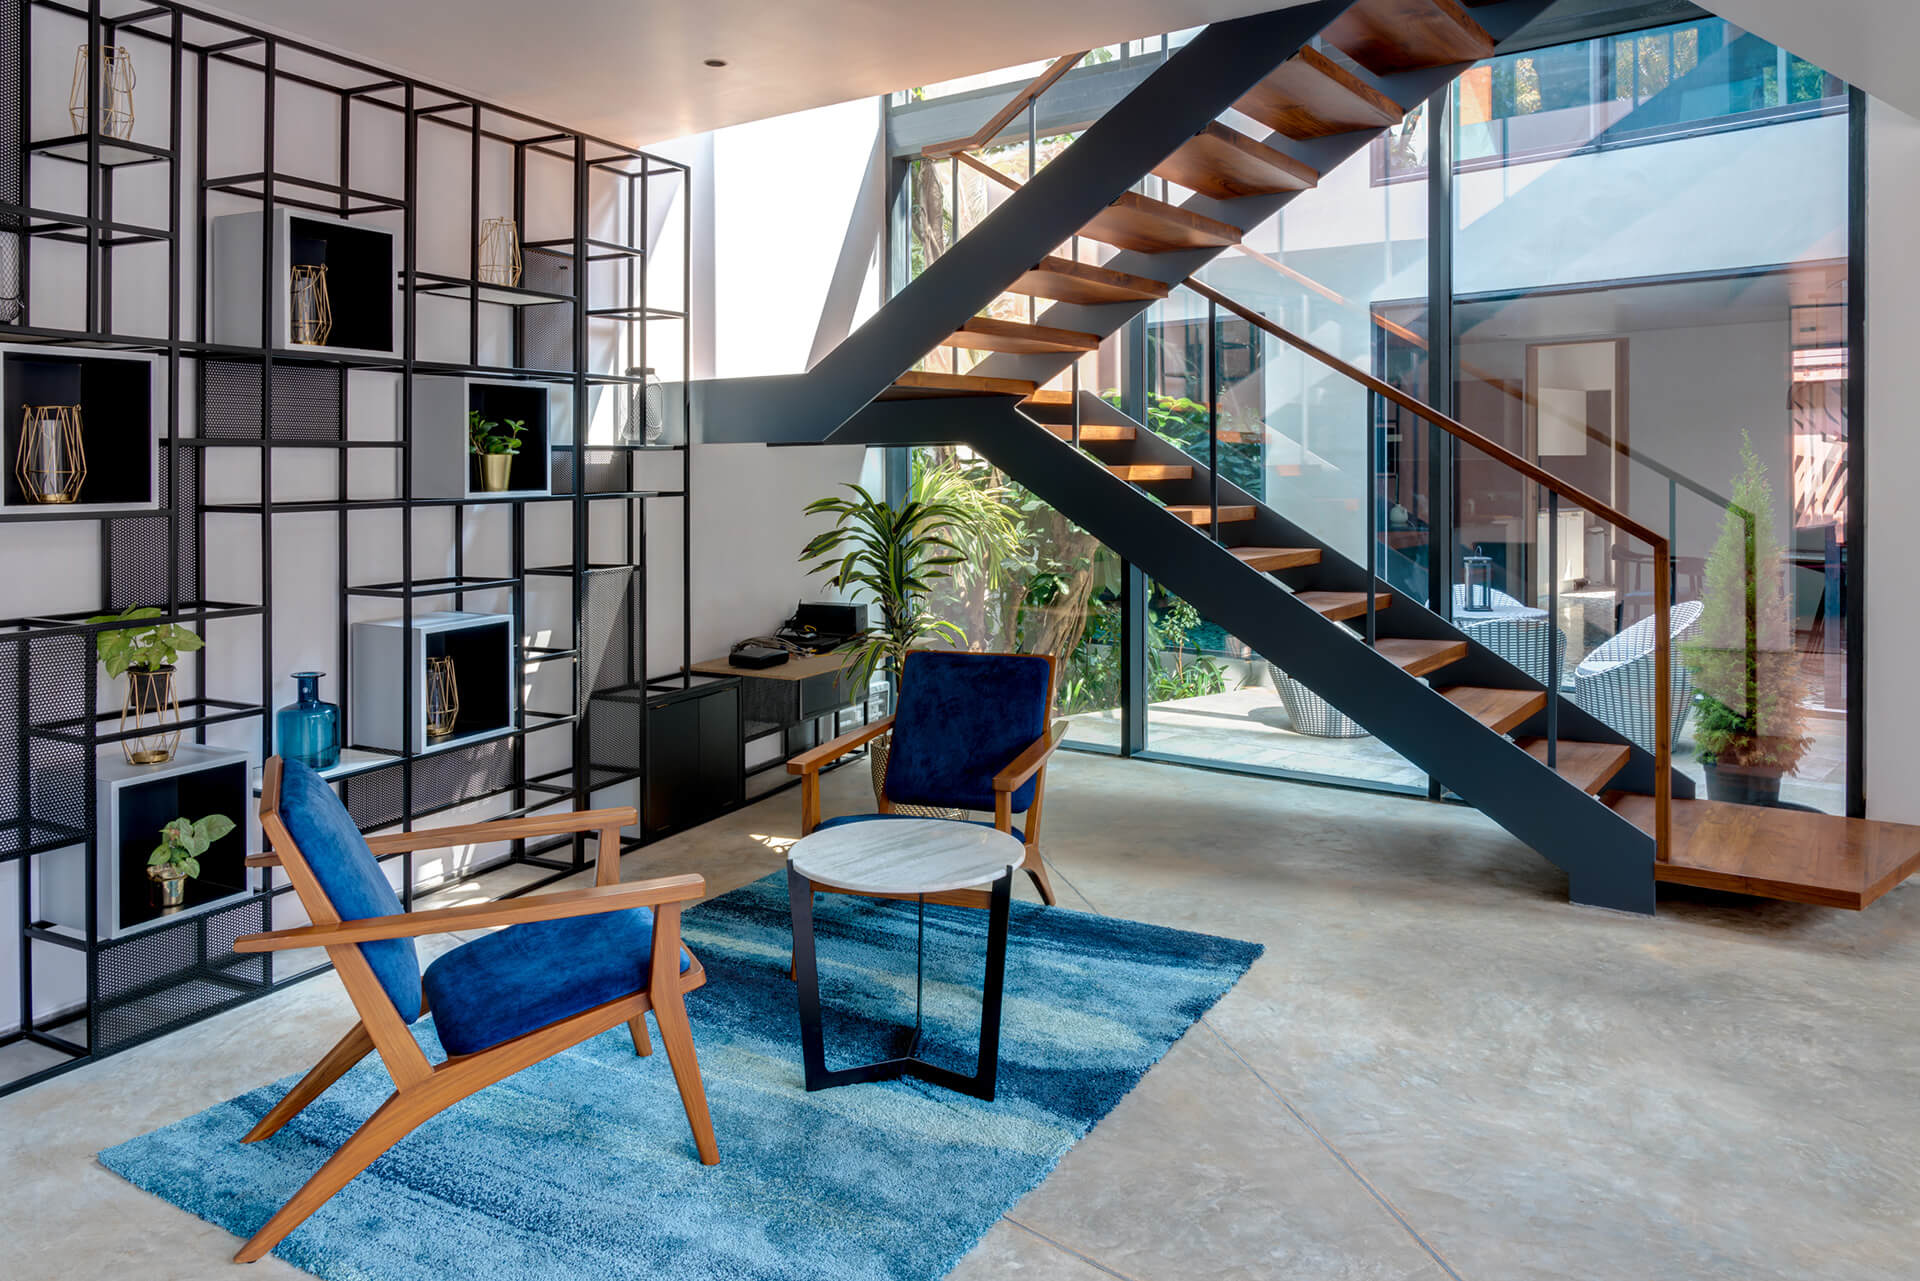 Contemporary interiors of moon house's living space | Lua and Terra Si-oul villas by Kriss Real Estate and SAV architects | STIRworld